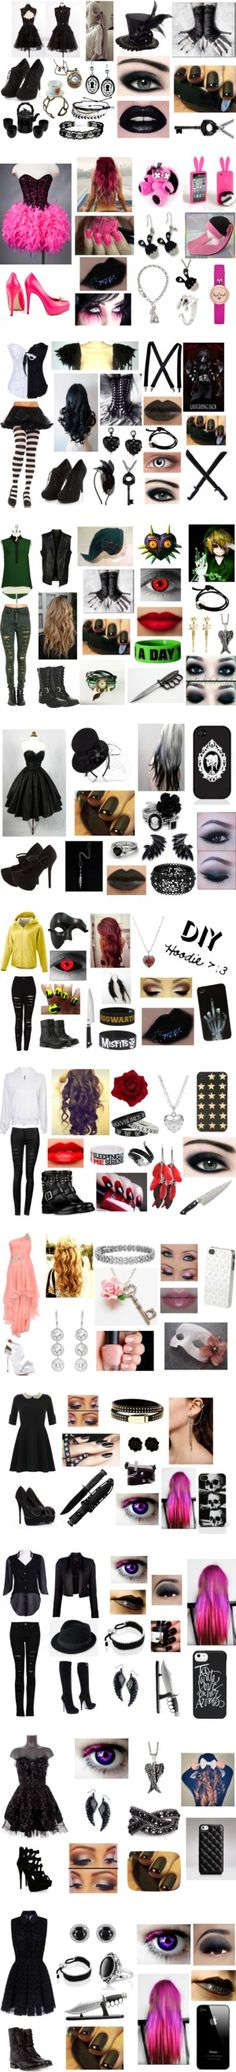 """~ Creepypasta Outfits ~"" by neko-of-the-night ❤ liked on Polyvore"